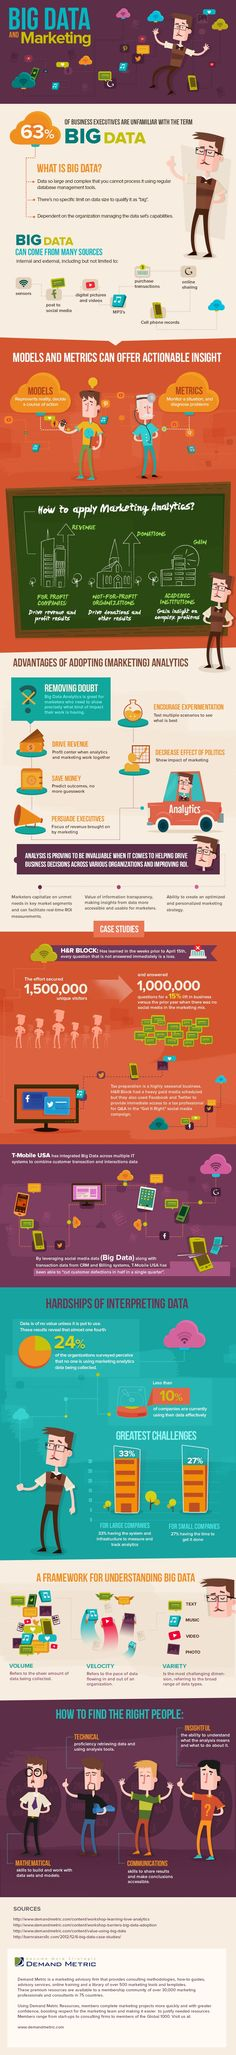 Interesting Infographics: What's The Big Deal About Big Data? Interesting Infographics: What's The Big Deal About Big Data? image big data and marketing Inbound Marketing, Marketing Technology, Marketing Digital, Internet Marketing, Marketing Data, Marketing Models, Mobile Marketing, Marketing Strategies, Technology News